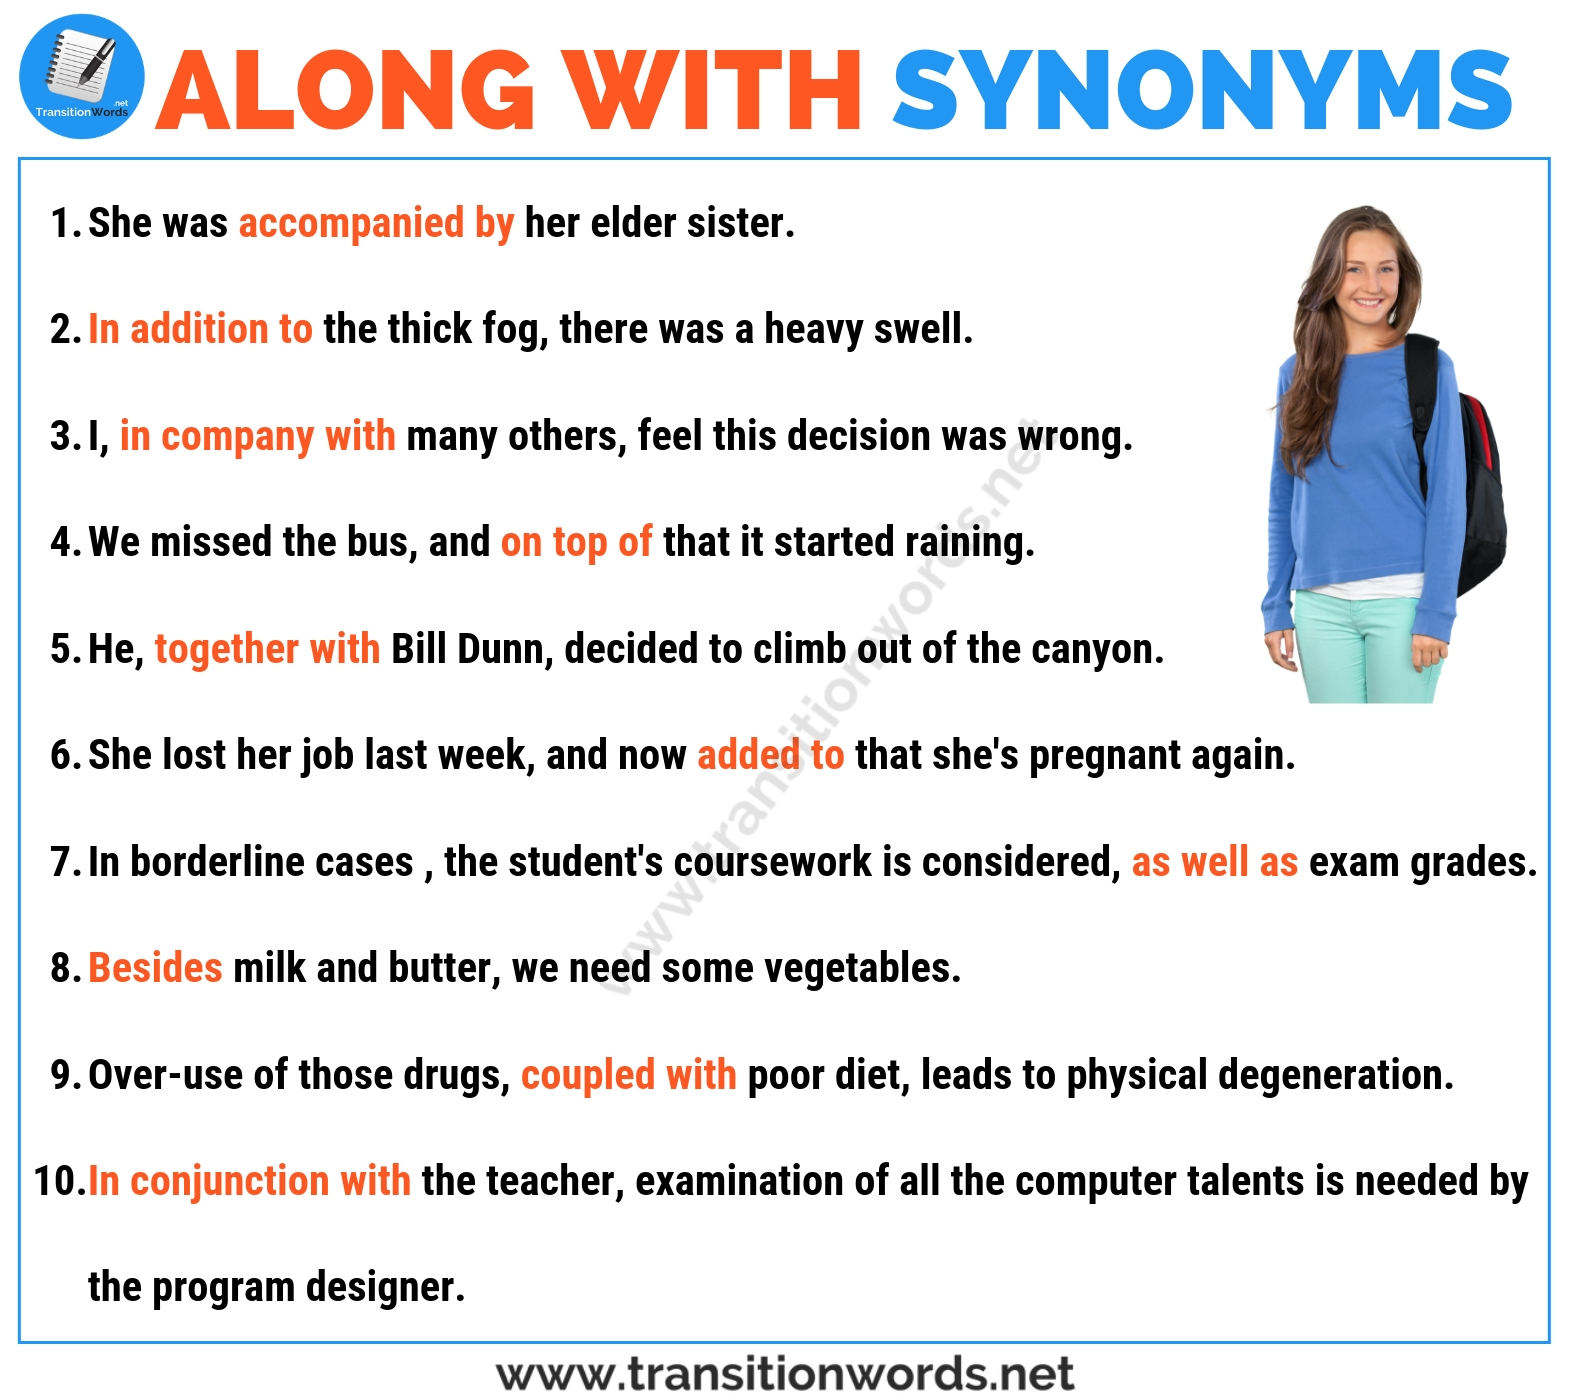 Other Words for ALONG WITH: Useful List of Synonyms for Along with in English